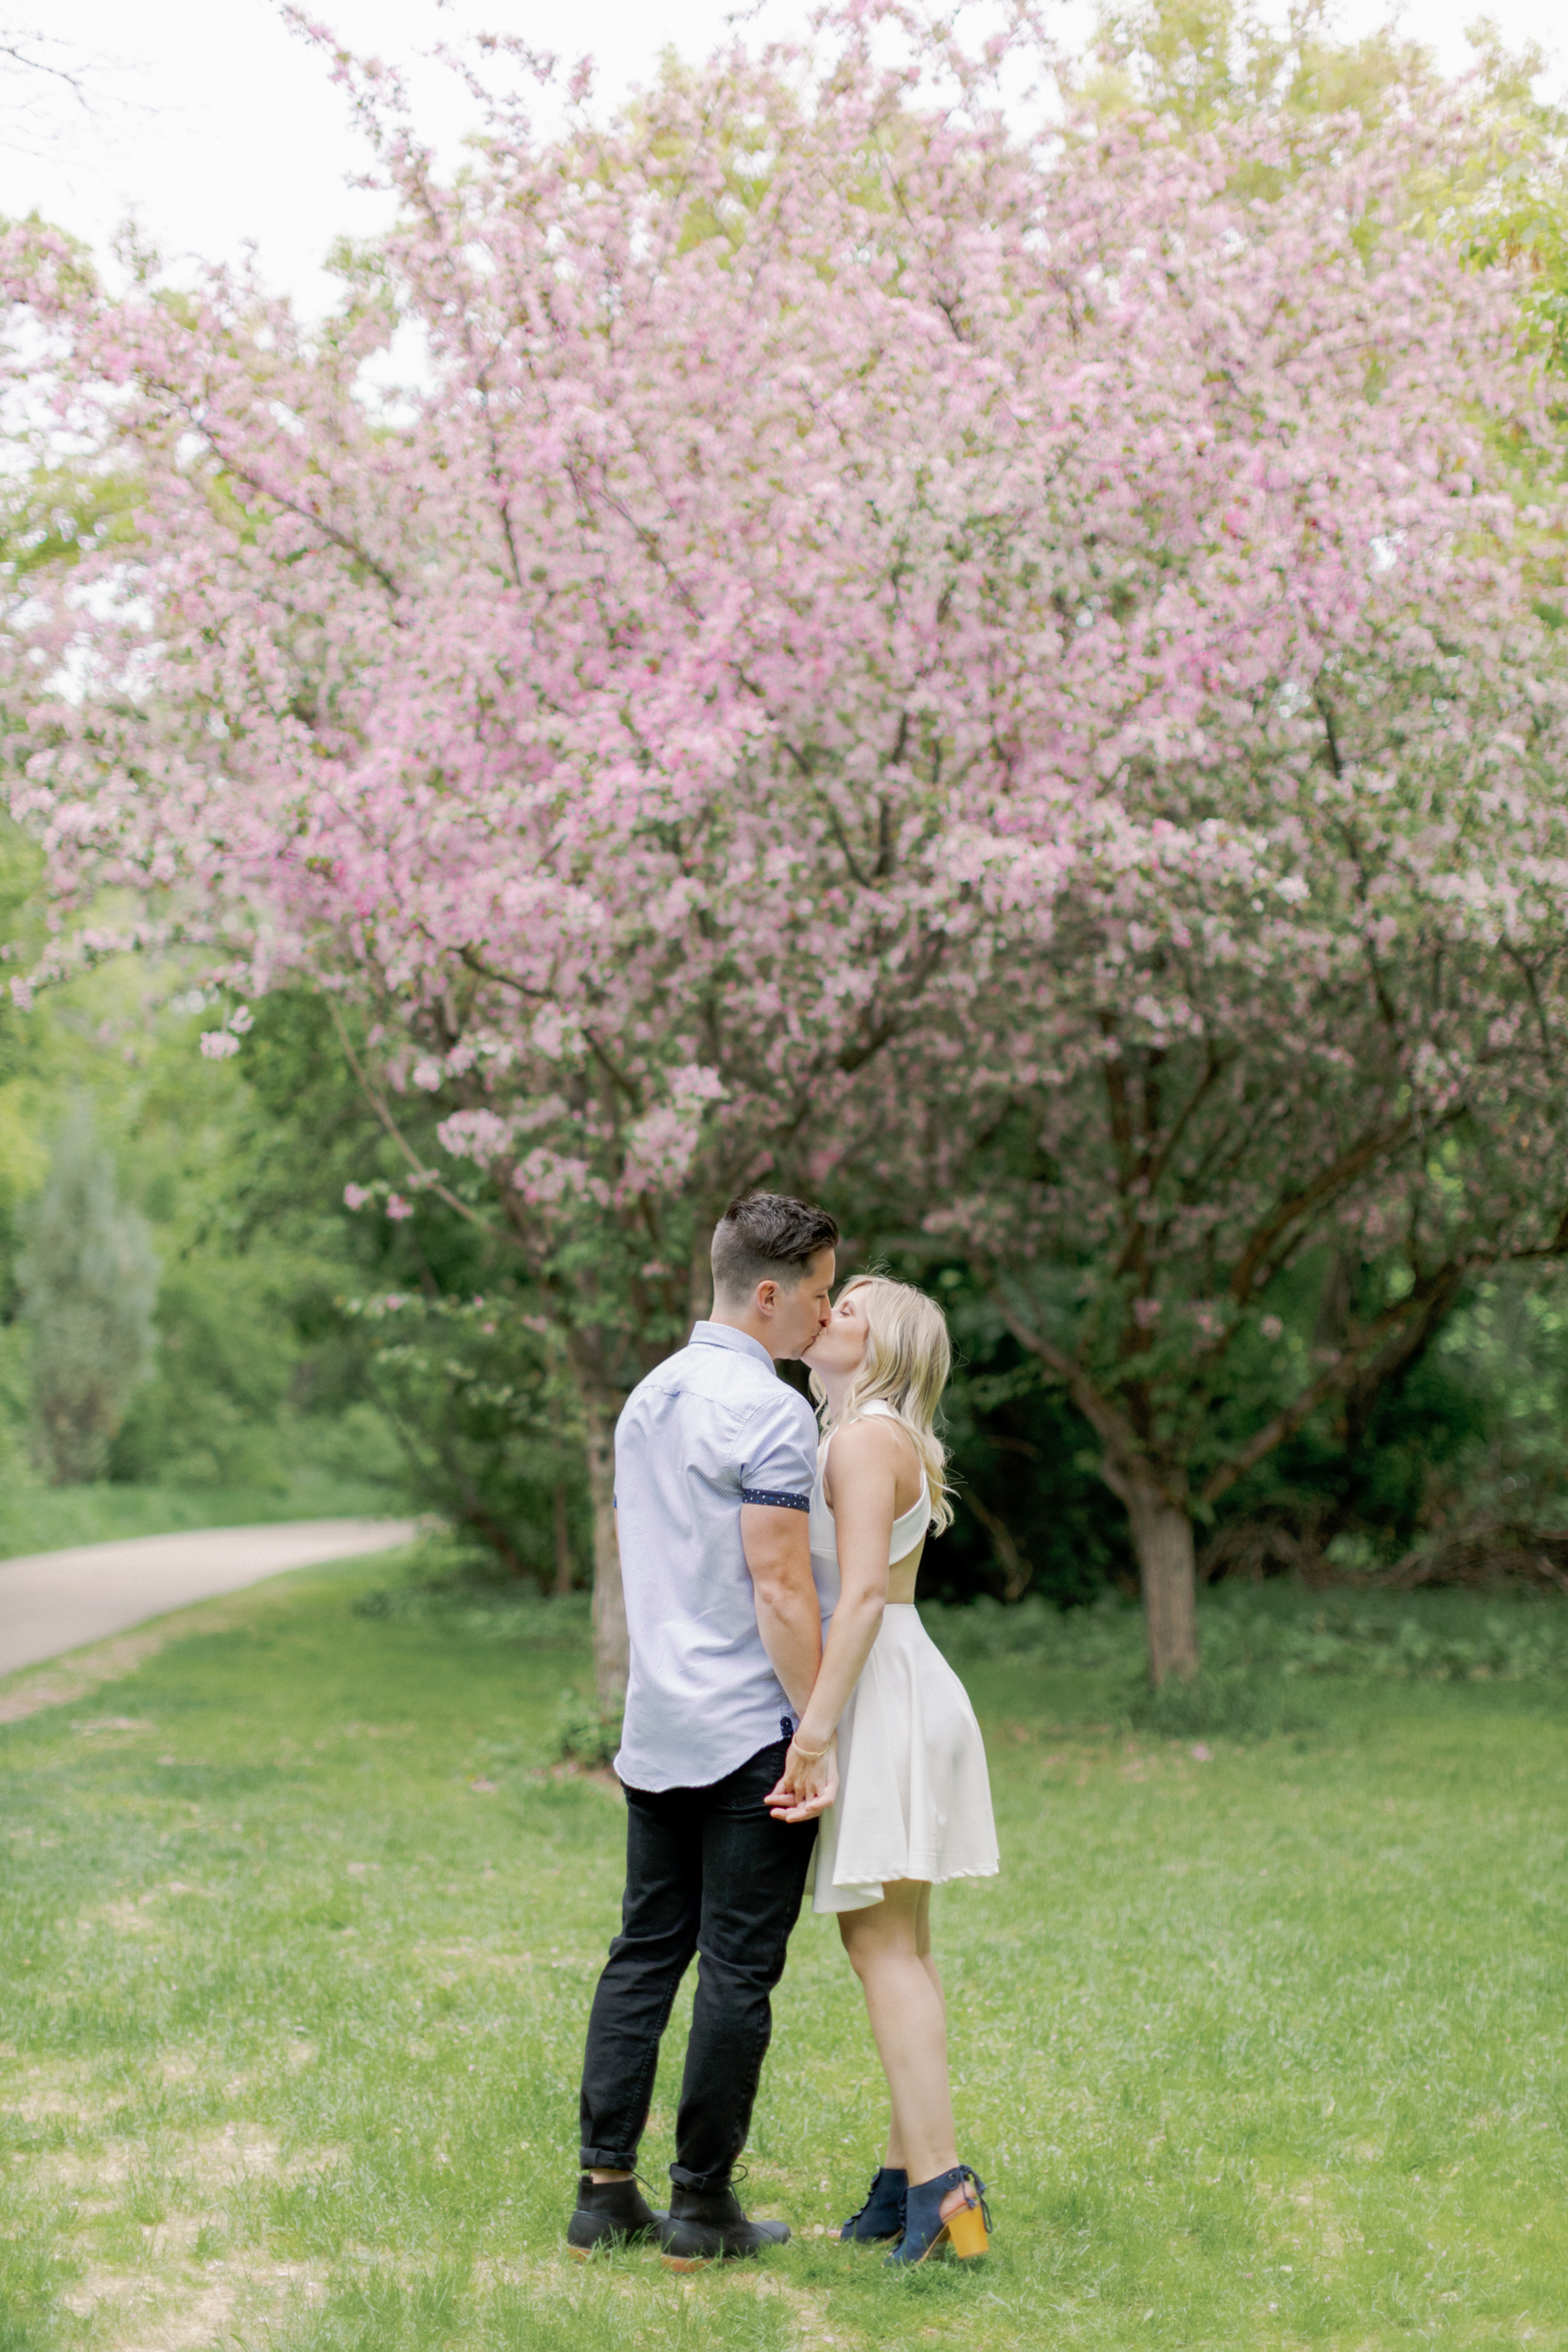 tanner and alyssa kiss under the tree